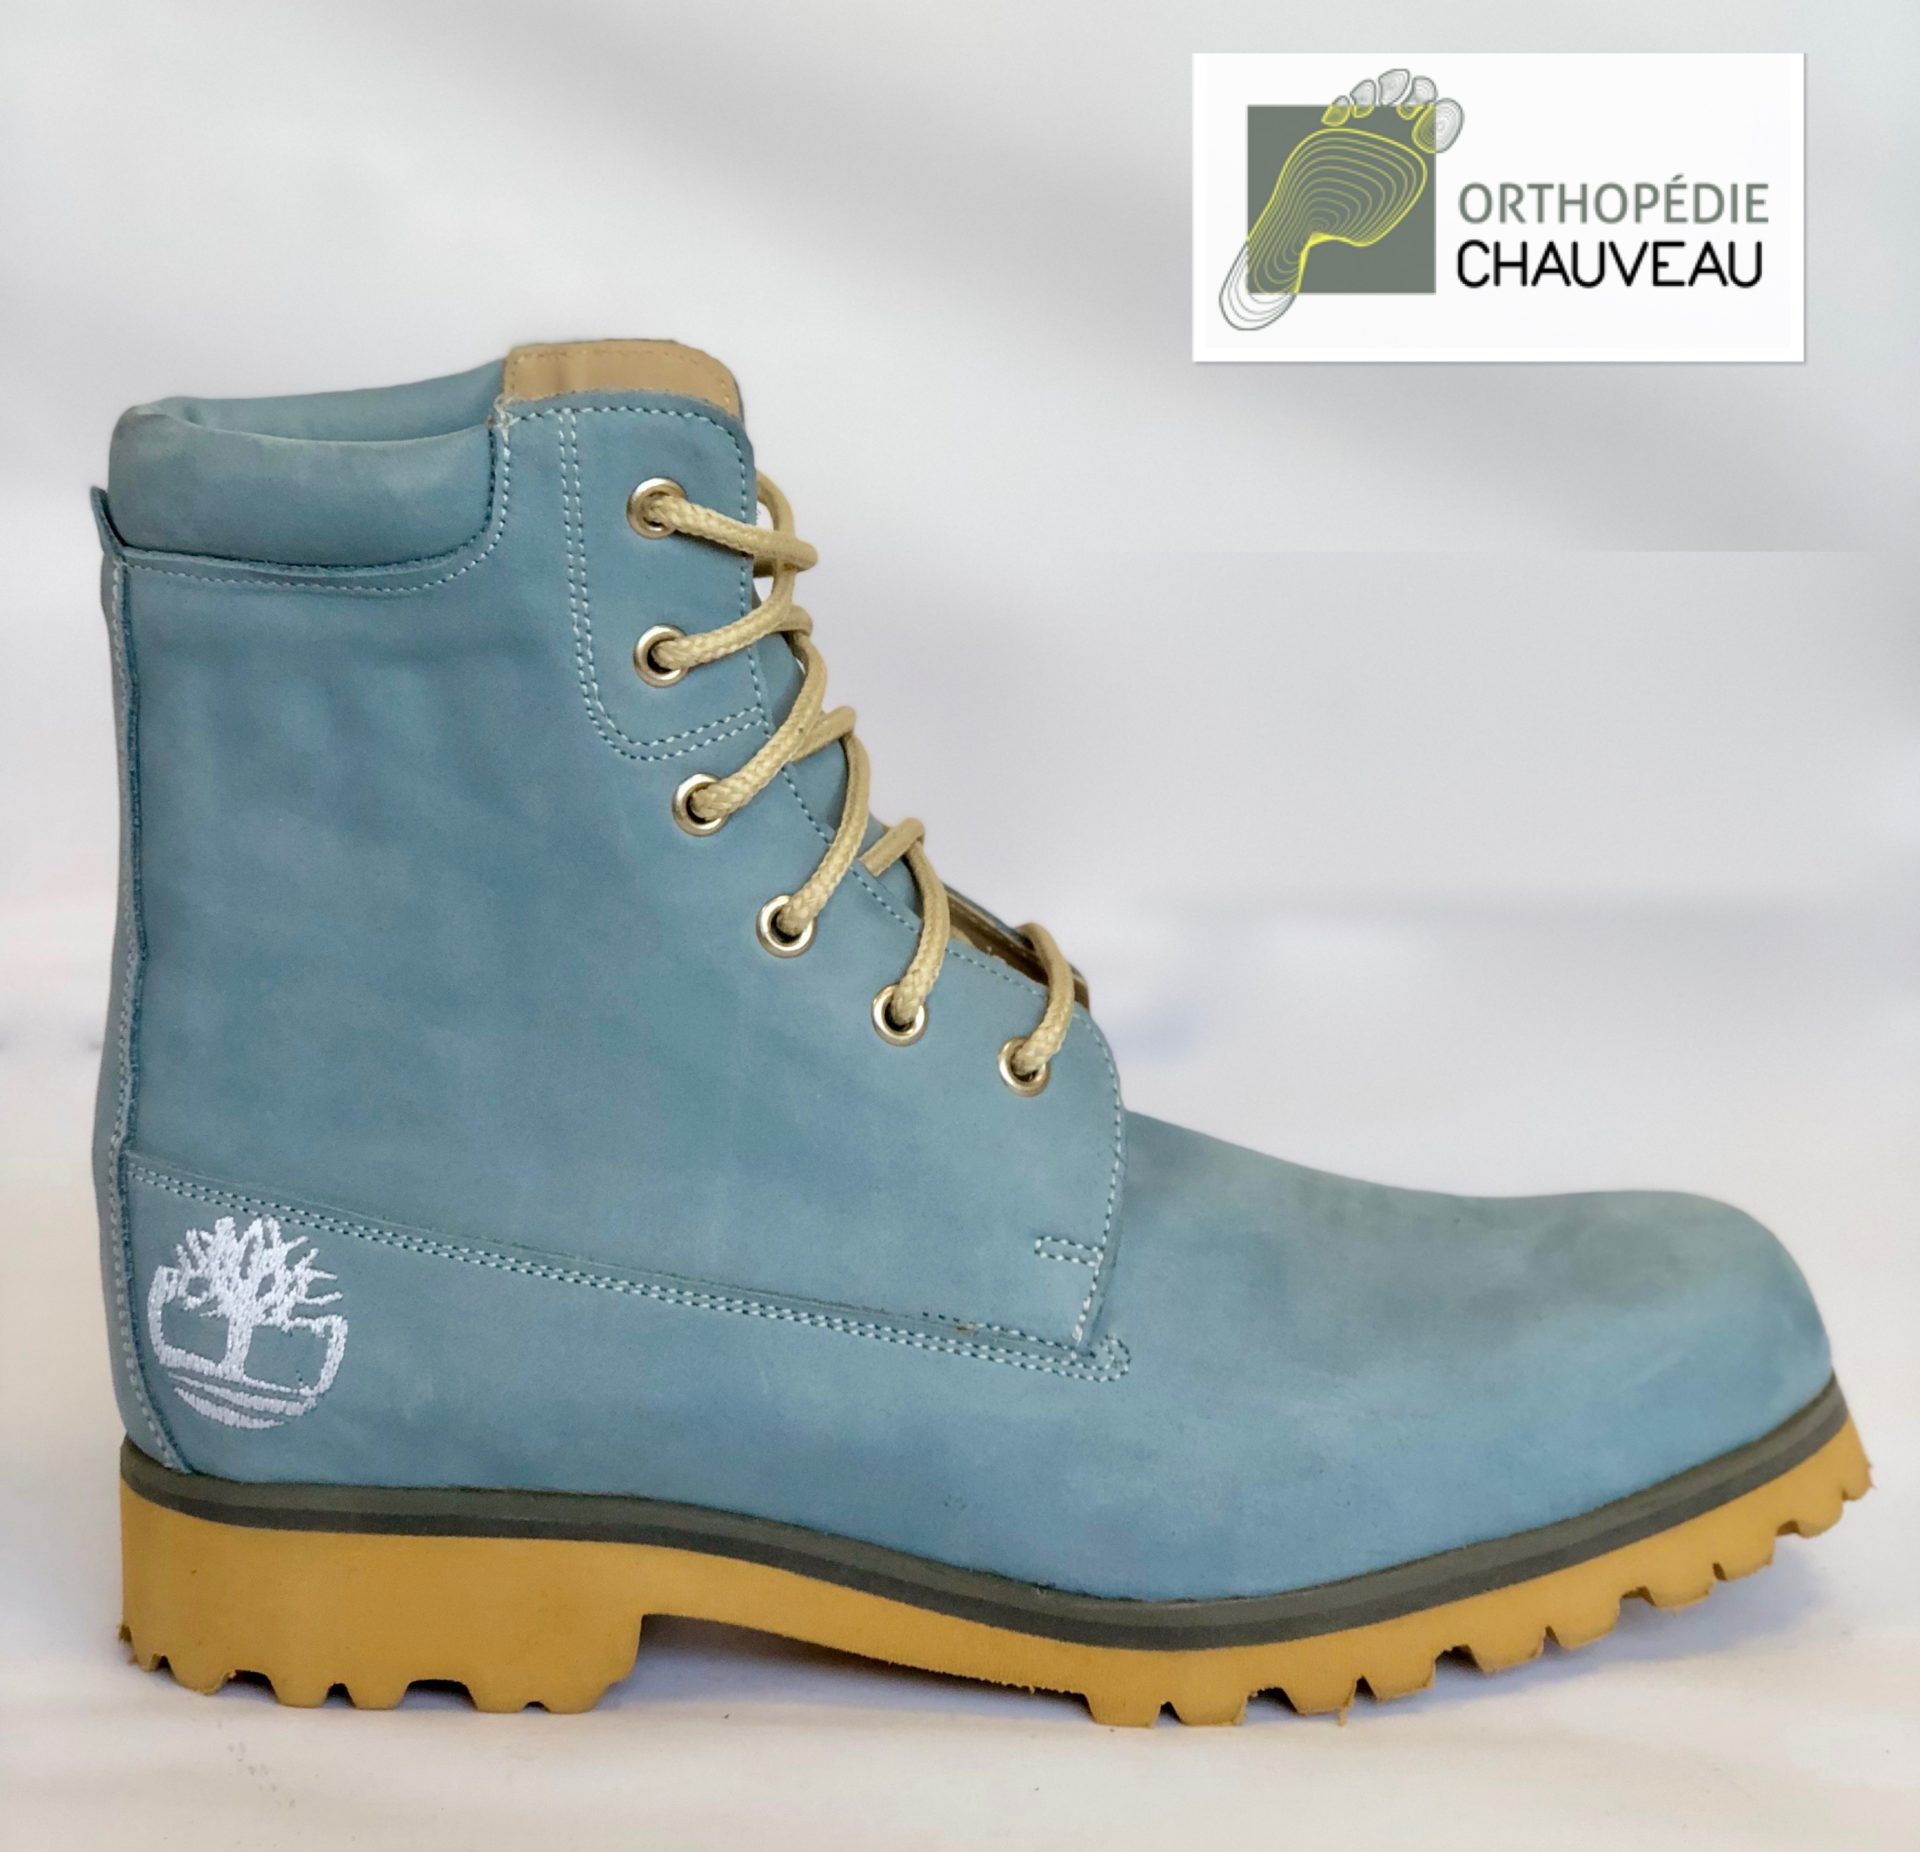 chaussures orthopediques Rennes bottines